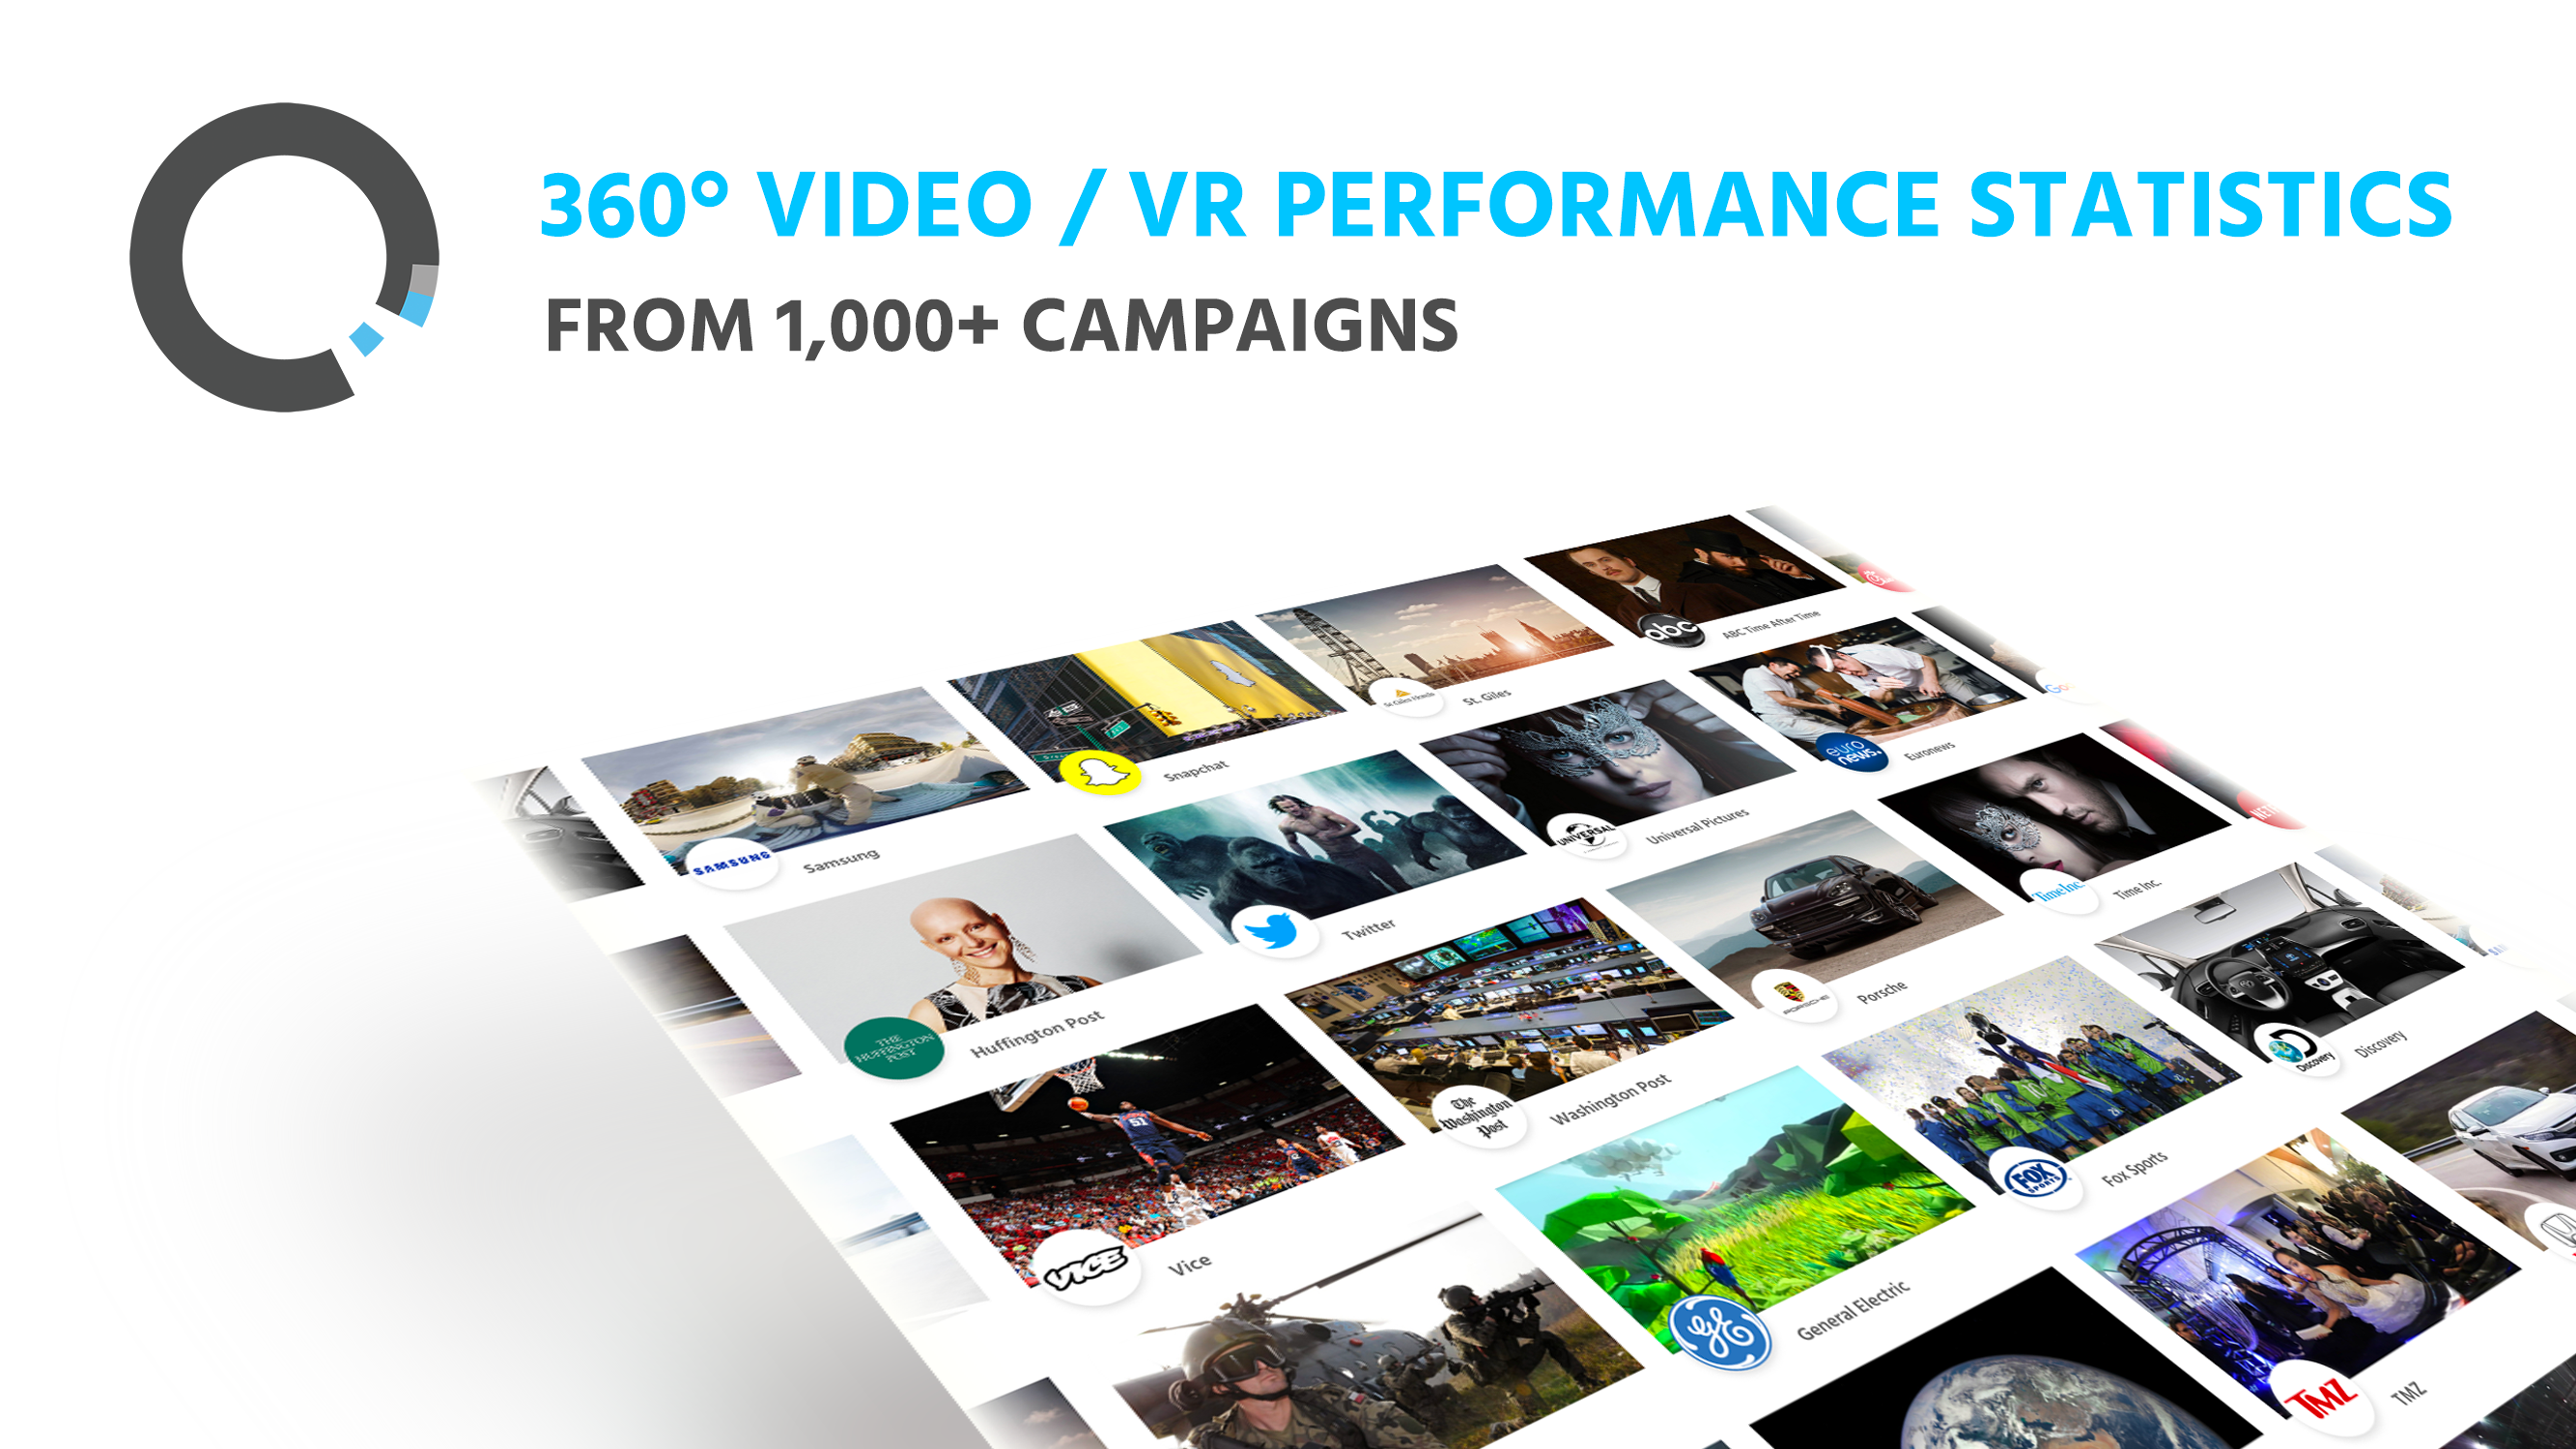 360° Video / VR Performance Statistics from 1000+ Campaigns